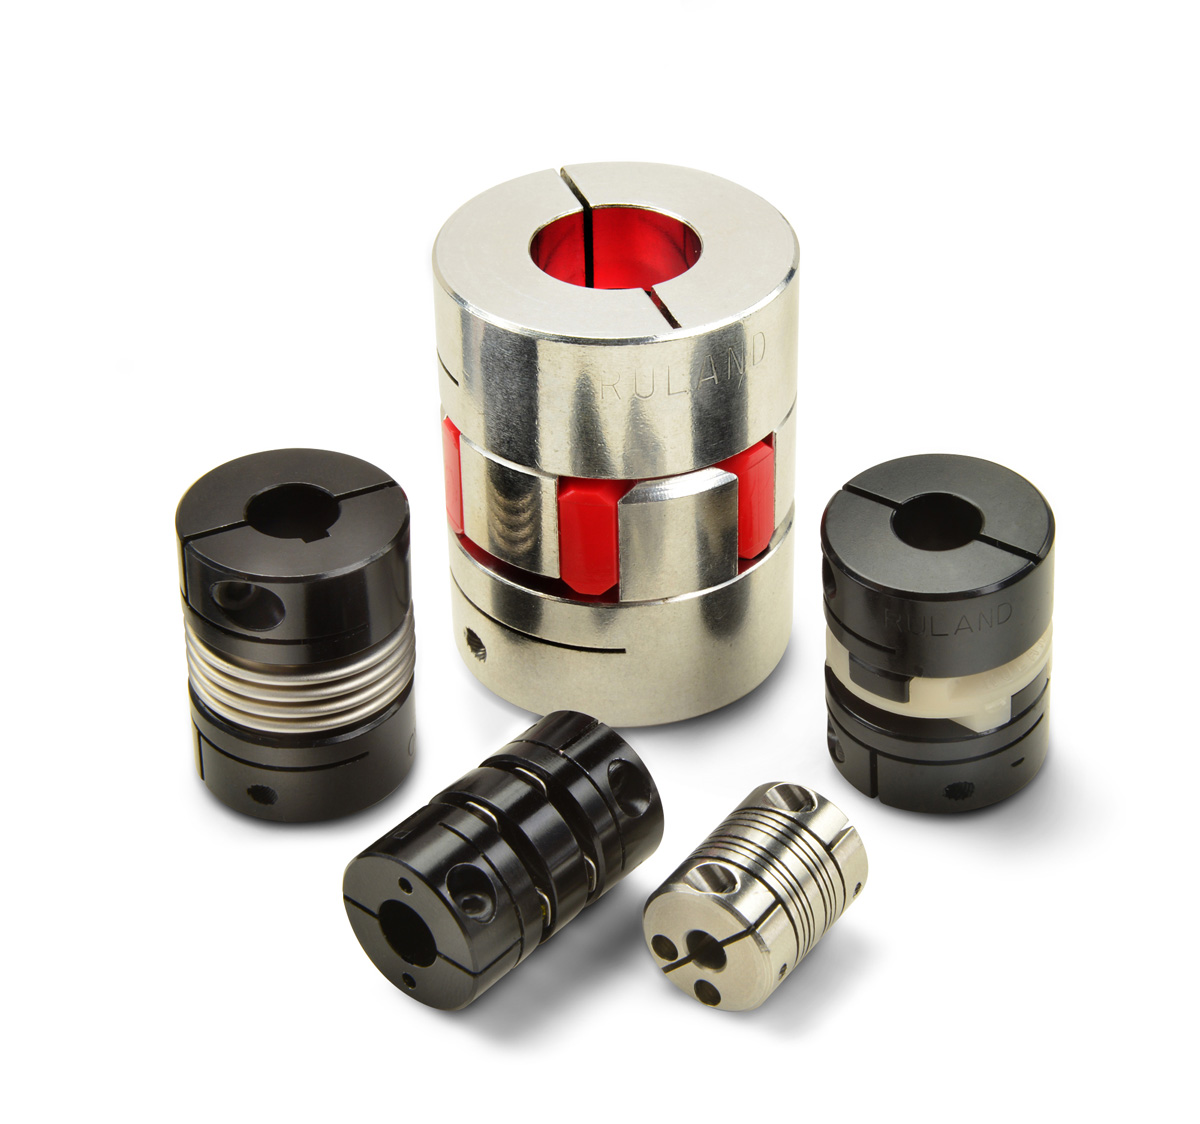 Servo couplings from Ruland: jaw coupling, oldham coupling, beam coupling, disc coupling, bellows coupling (from center clockwise)